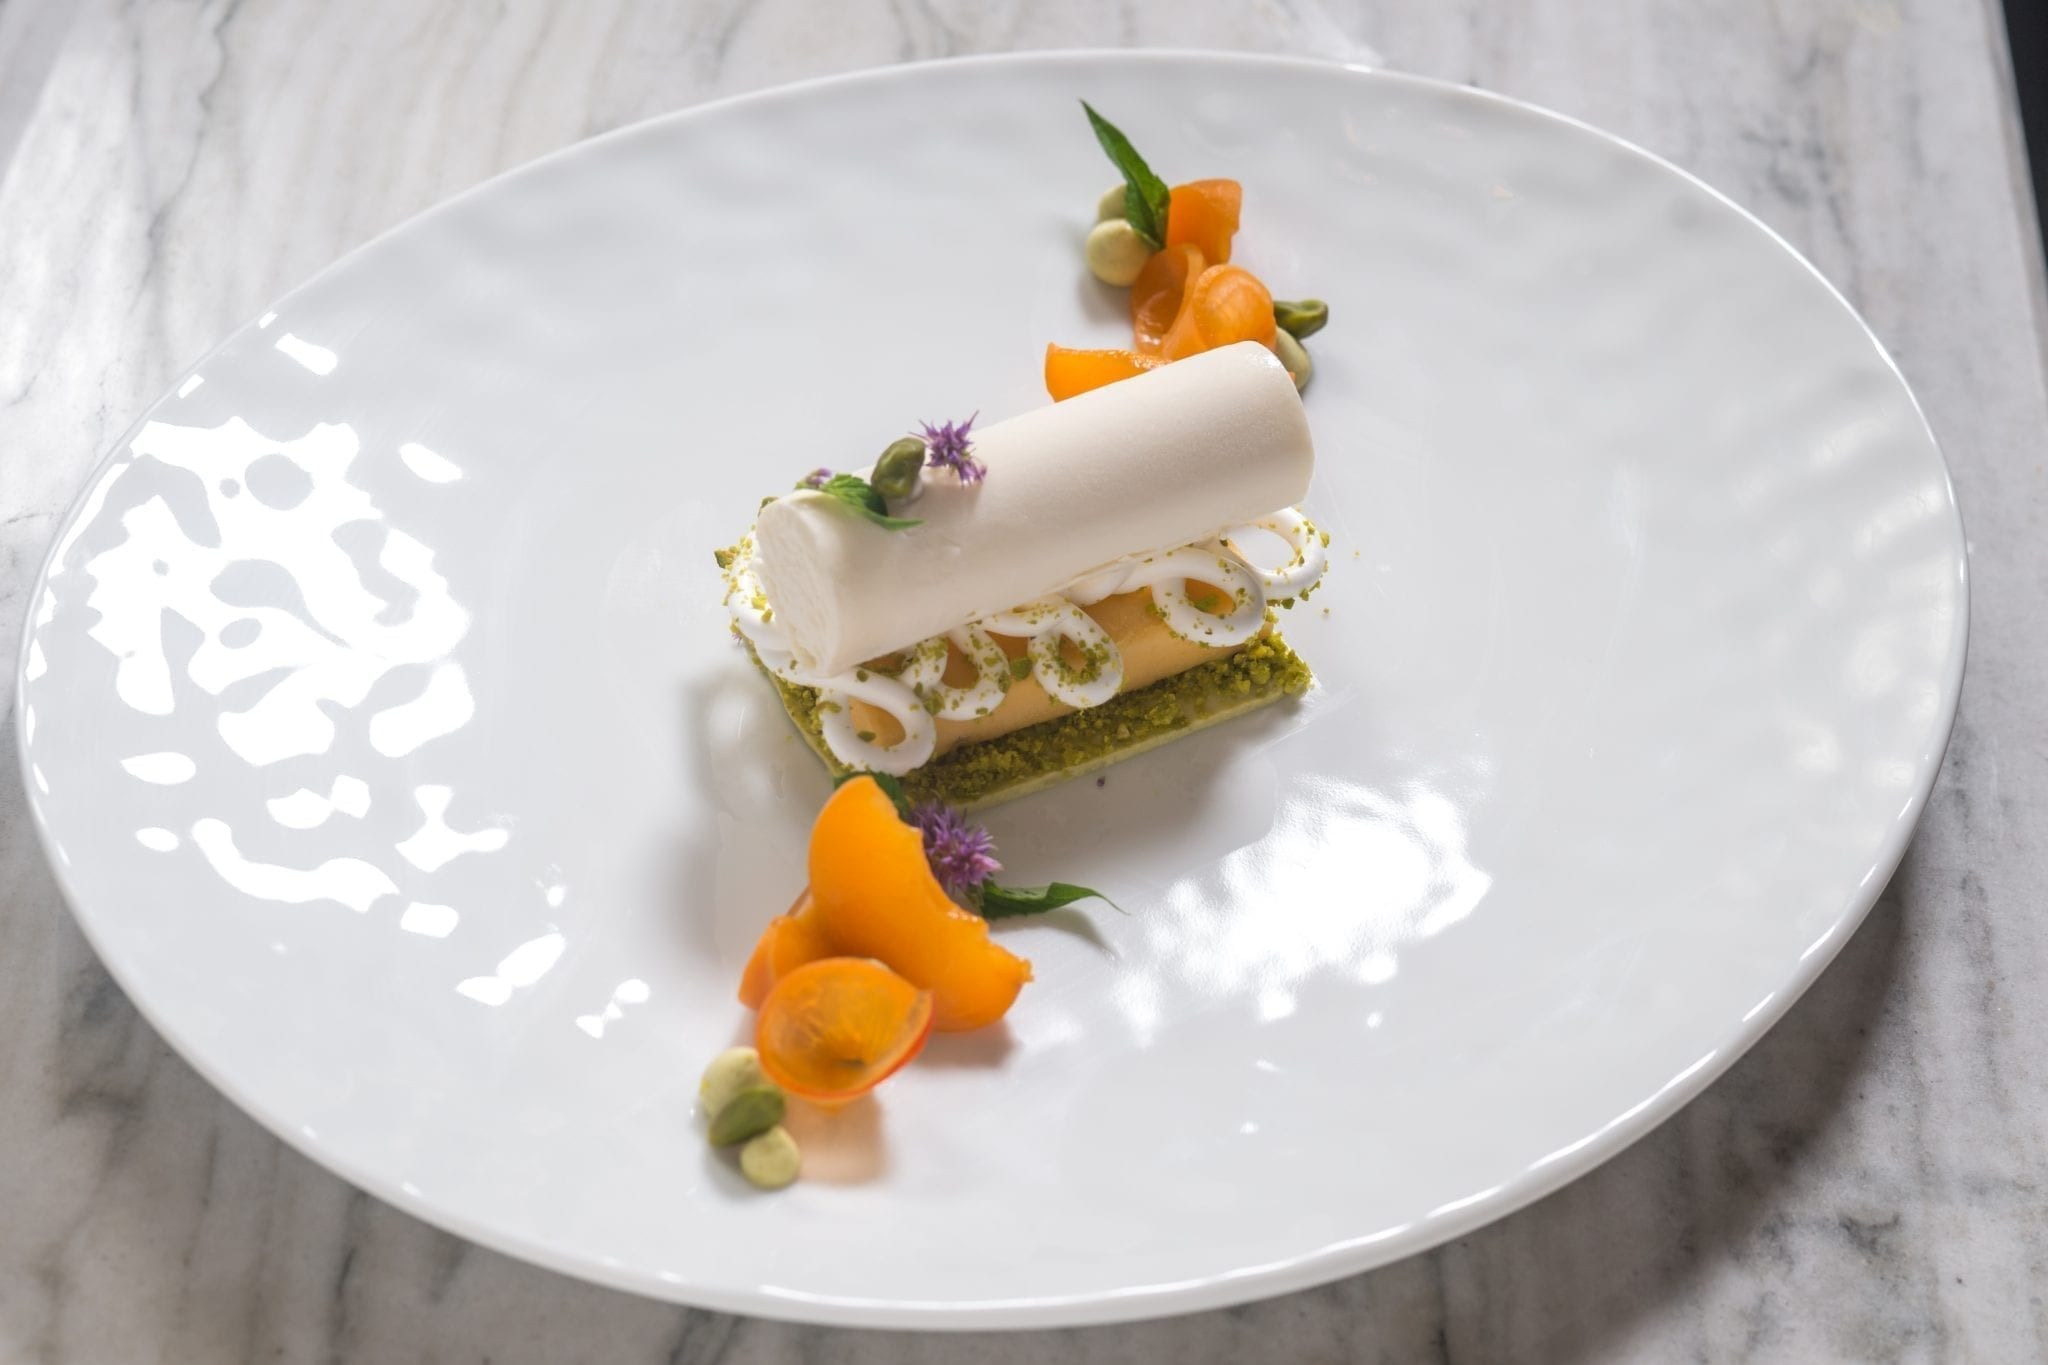 Fruit pastry on a plate, from Cafe Boulud. Photograph by Paul Wagtouicz.